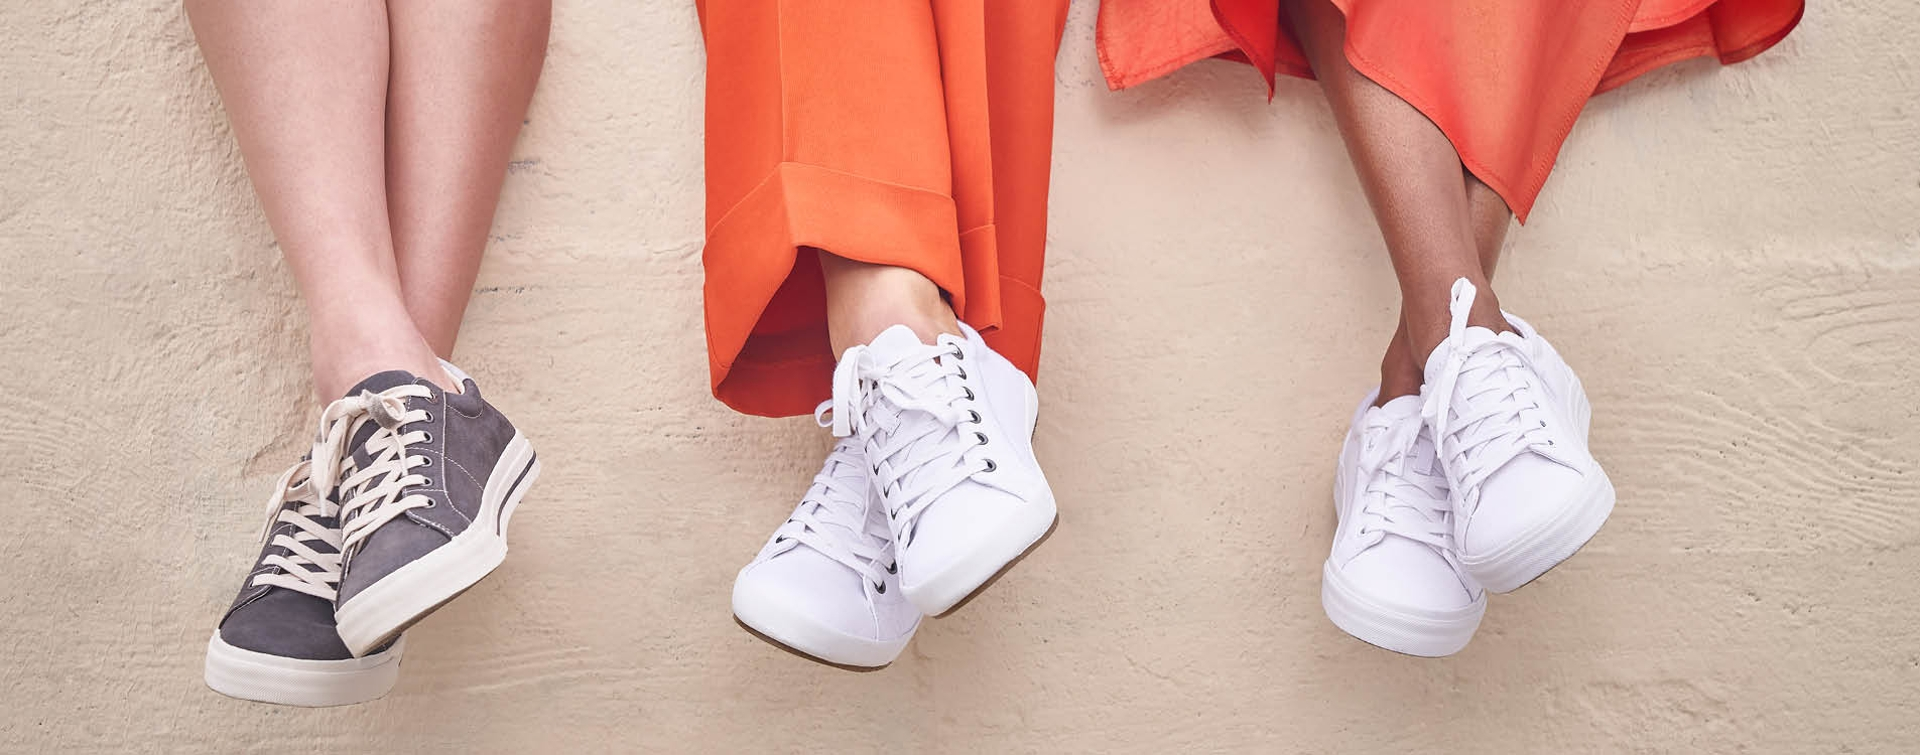 Close up shot of 3 ladies feet dangling over a brick wall wearing Taos Sneakers.